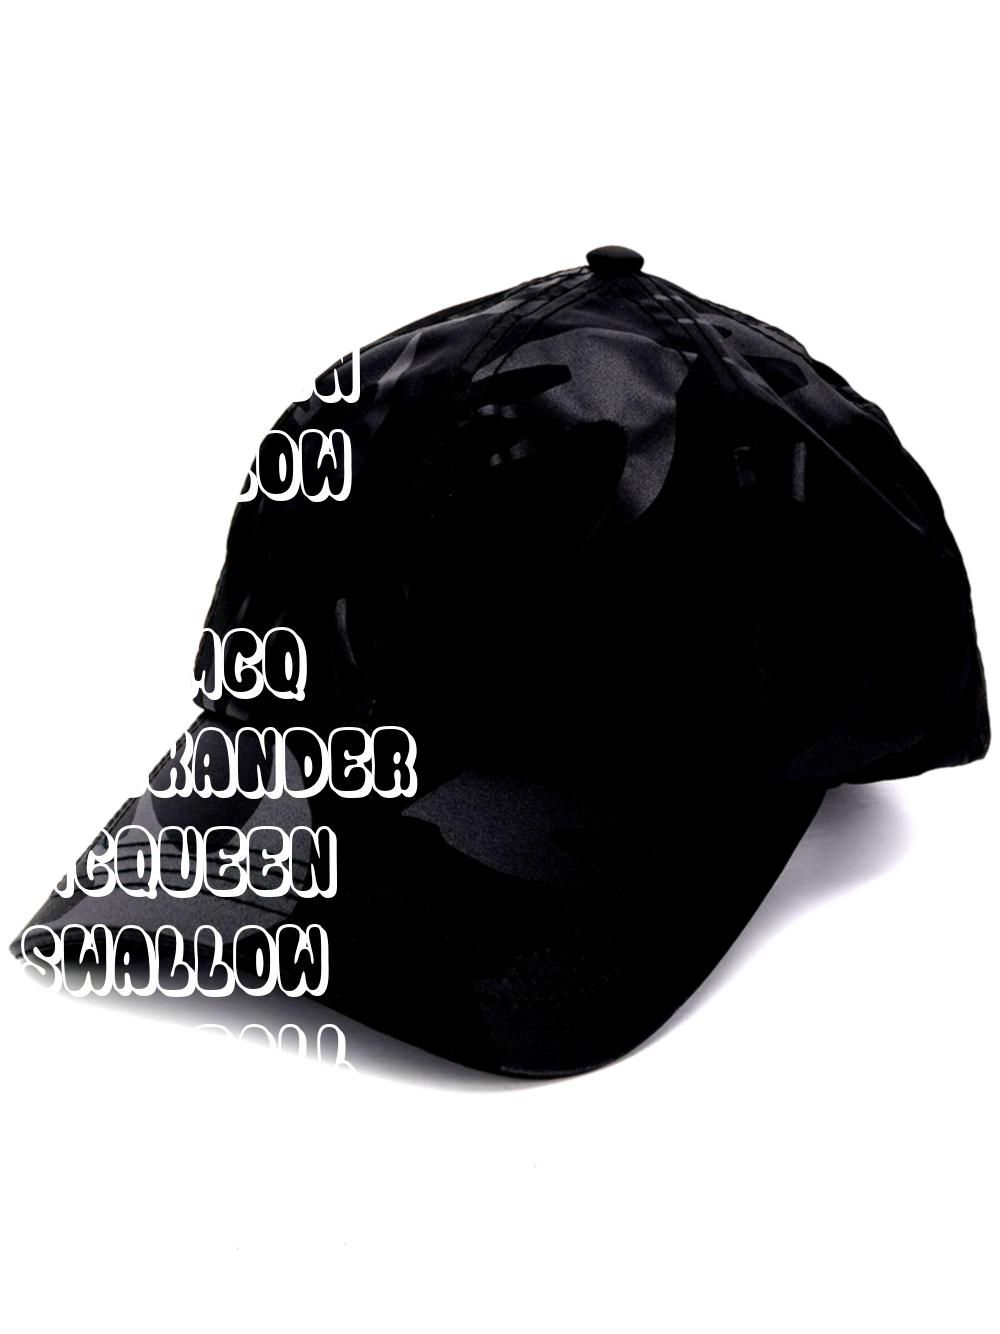 Alexander McQueen Swallow Baseball Cap  Farfetch  McQ Alexander McQueen Swallow Baseball Cap  Farfetch   lululemon Now And Always Tote Mini Online Only 8L Jacquard Camo C...